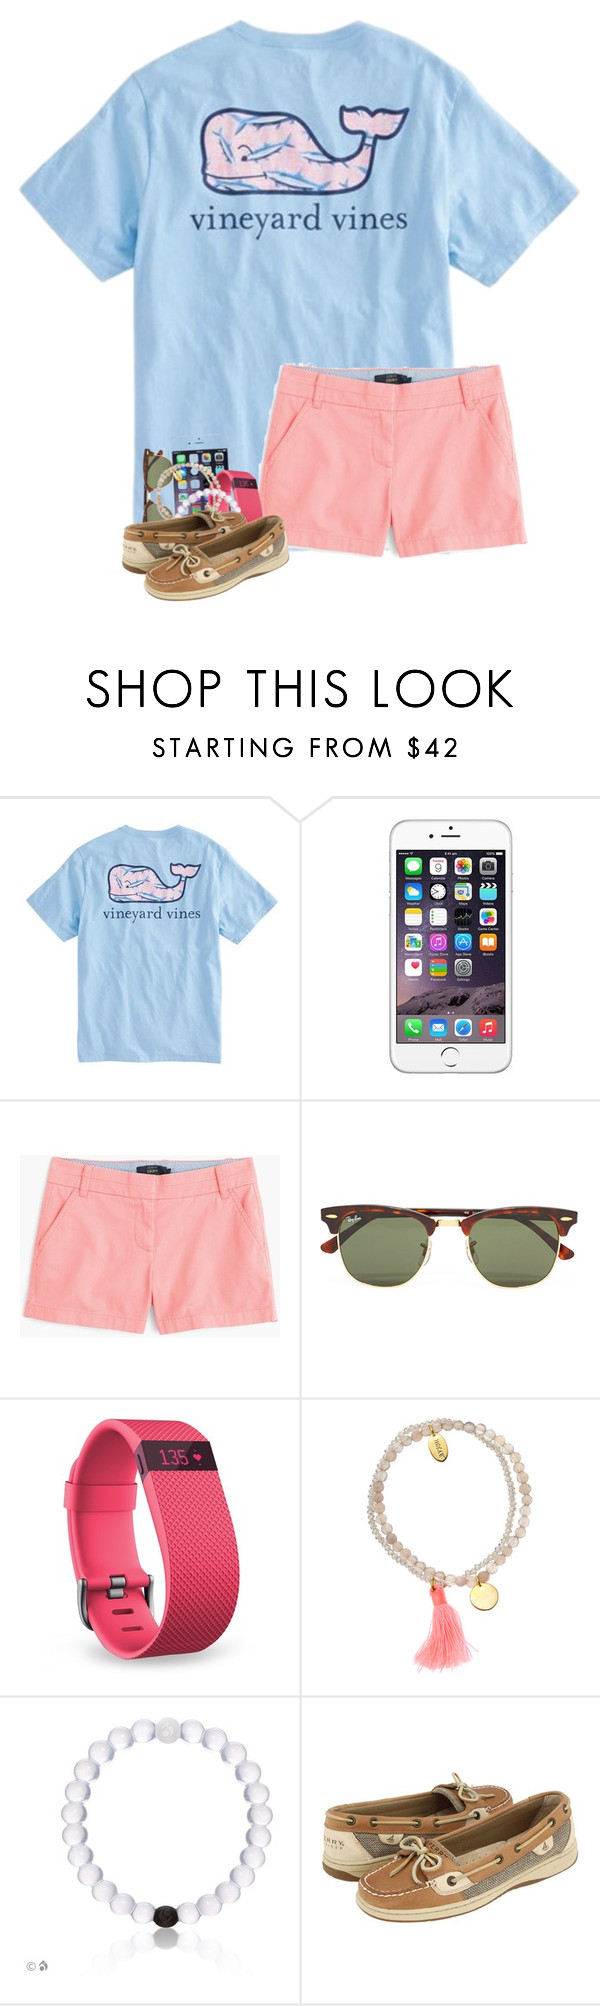 """&&; going boating"" by strawberry-styles ❤ liked on Polyvore featuring Vineyard Vines, J.Crew, Ray-Ban, Fitbit, Jigsaw and Sperry"